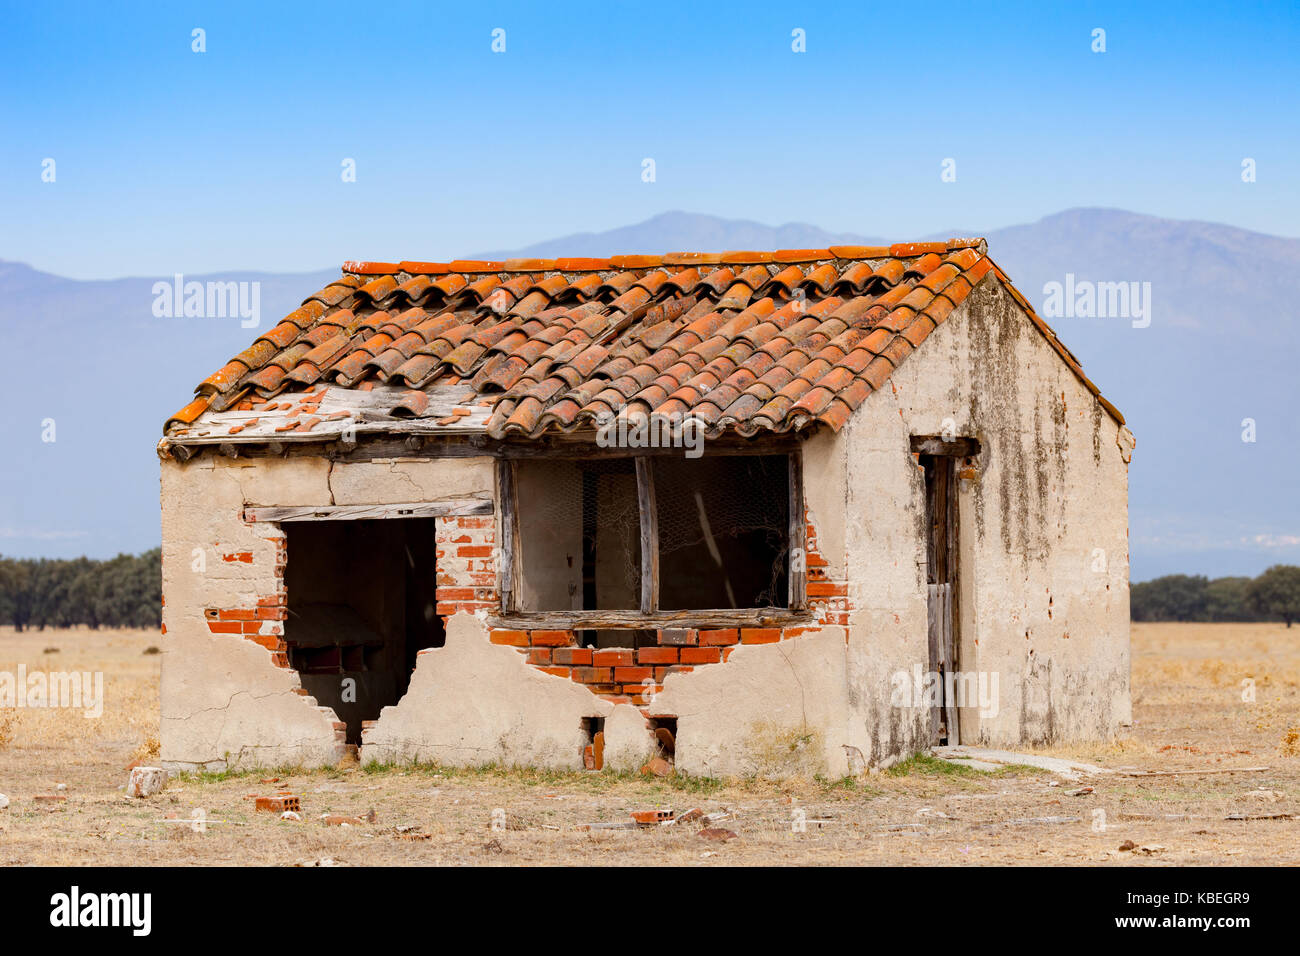 Small Old House With The Roof Collapsed And A Broken Window Stock